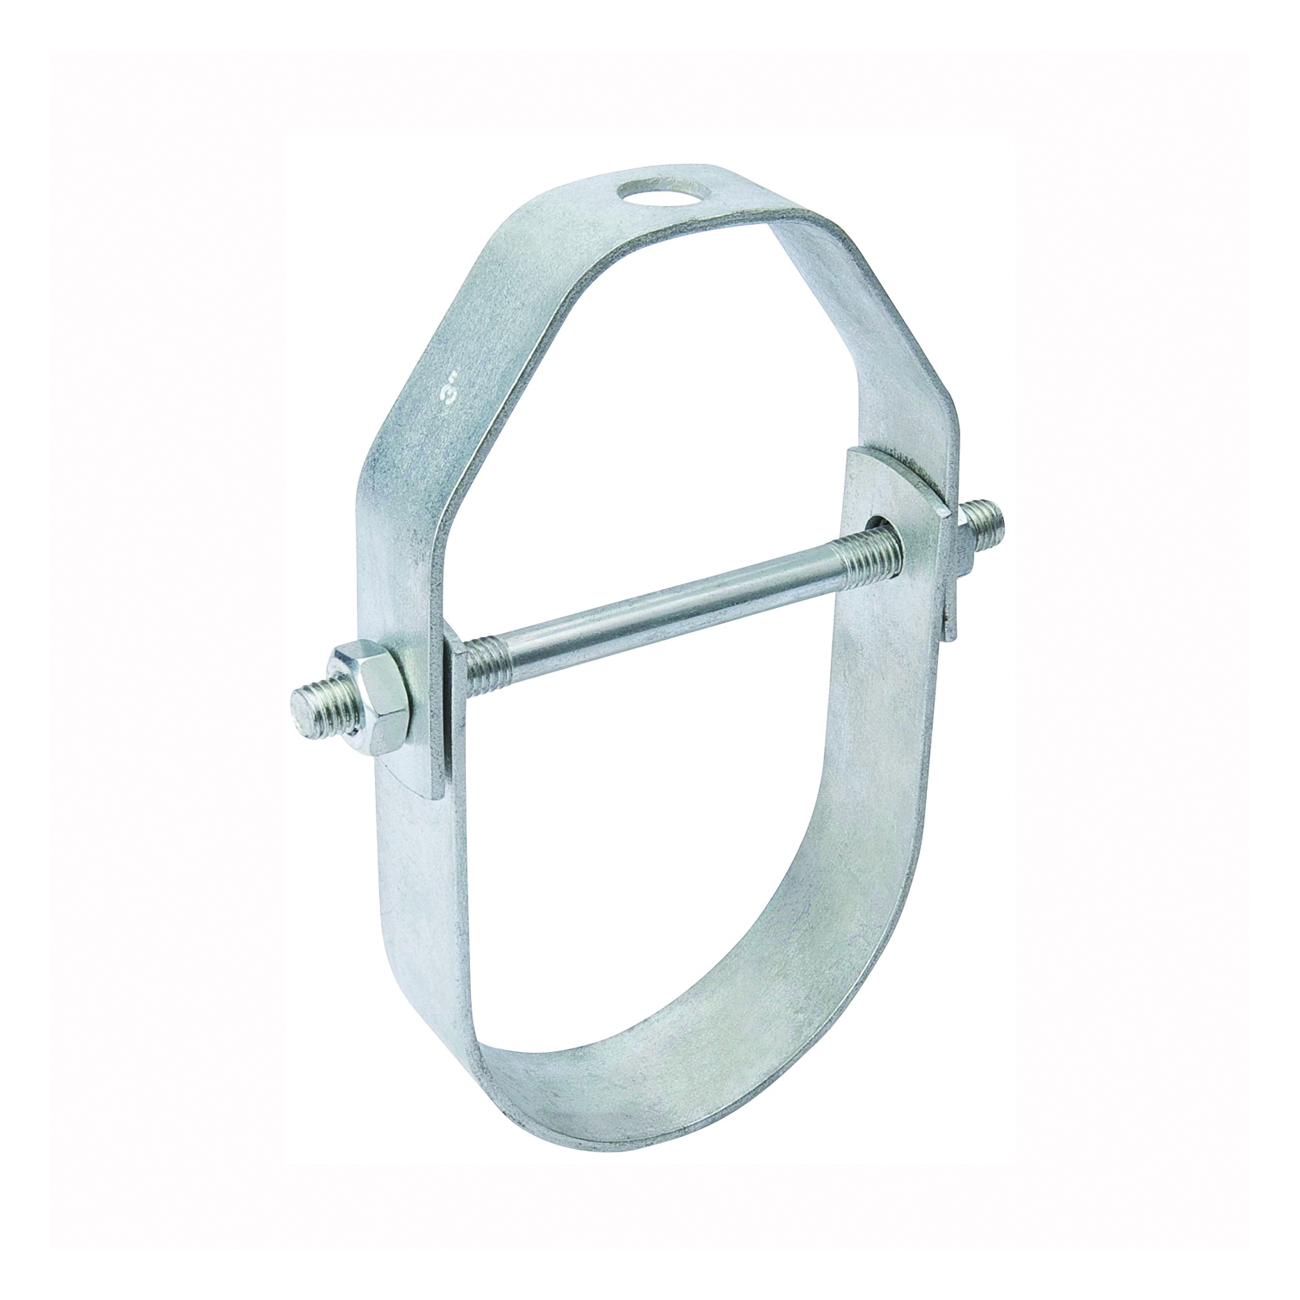 Picture of B & K G65-075HC Pipe Hanger, 3/4 in Opening, Galvanized Steel, 20